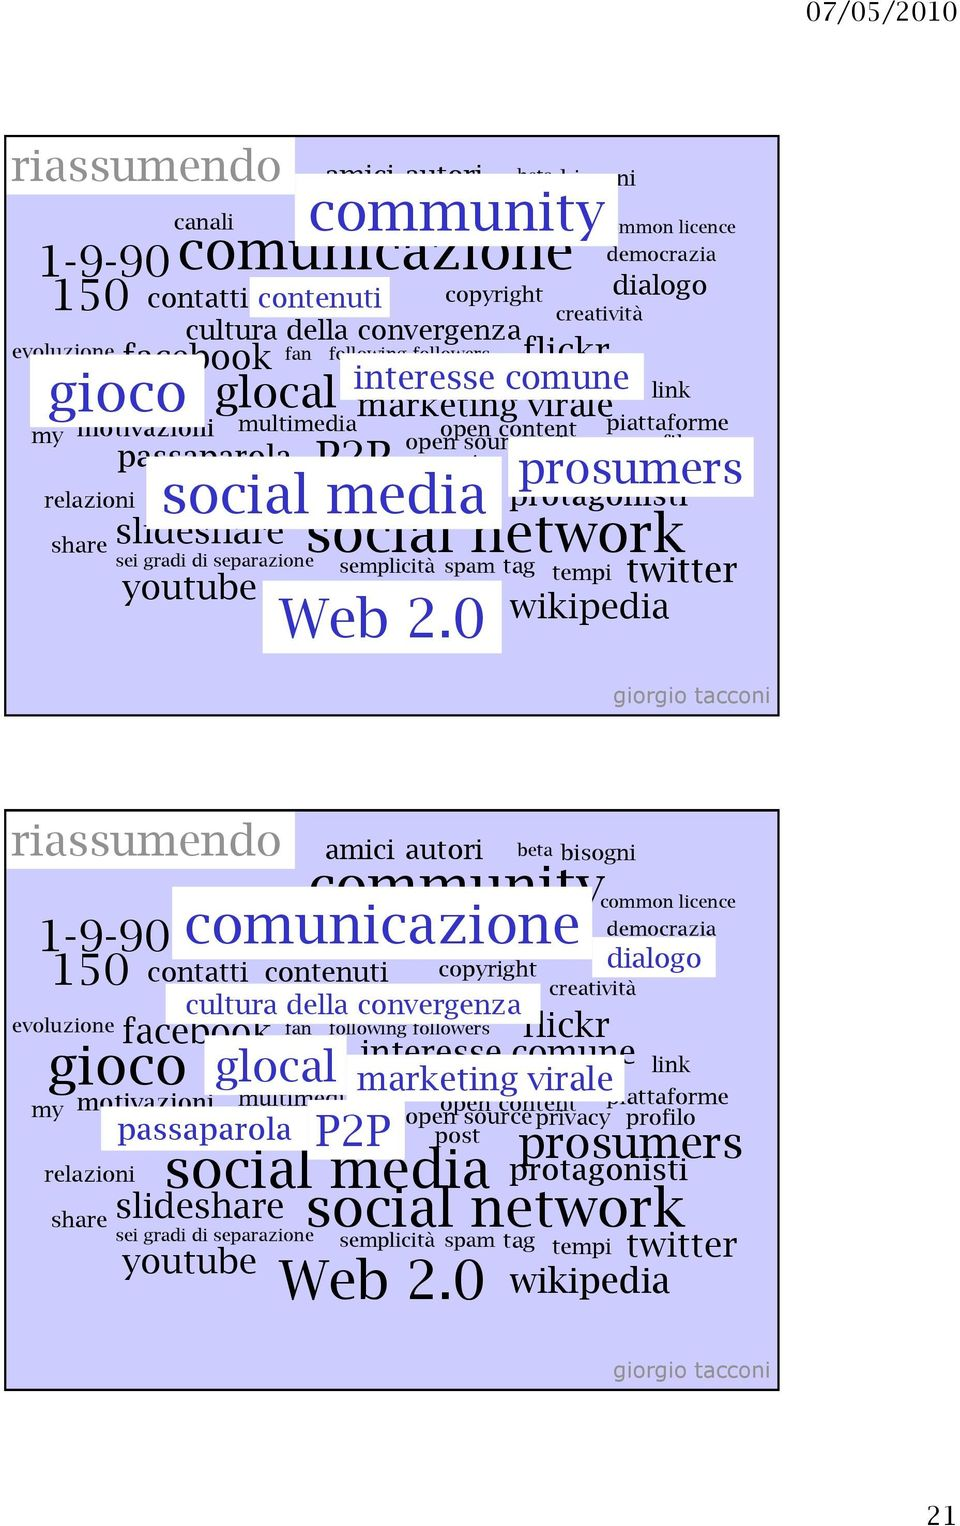 0 slideshare share sei gradi di separazione youtube fan glocal amici autori following followers copyright beta bisogni creatività common licence democrazia dialogo profilo riassumendo 1-9-90 150